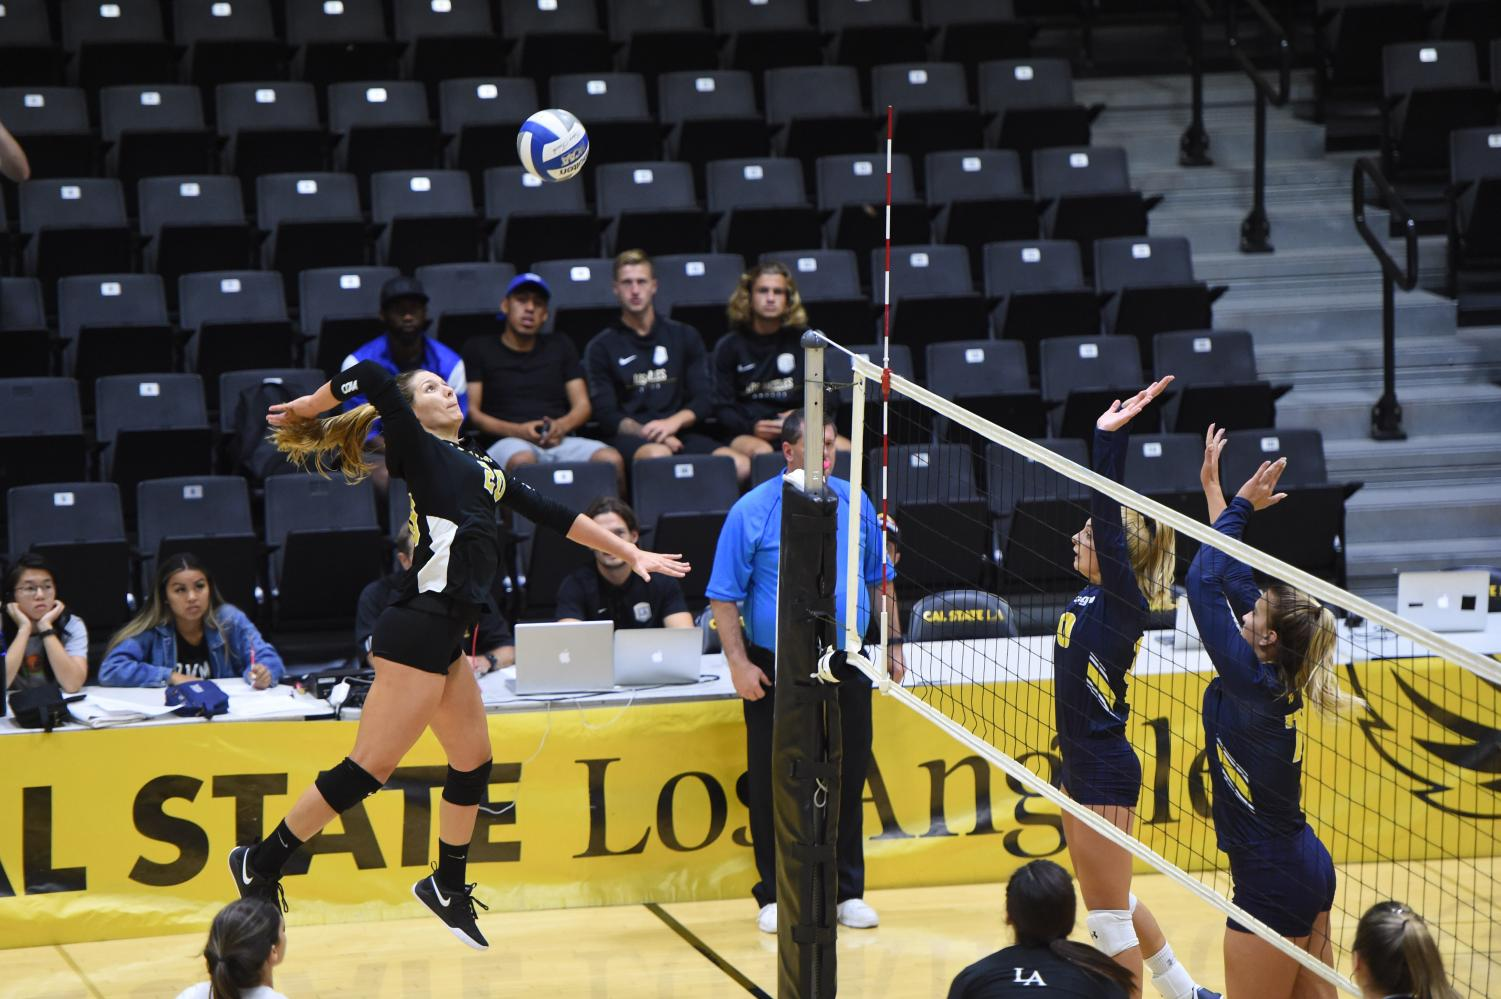 Alejandra Negron (20) reaches to hit the ball. The Cal State LA women's volleyball team defeated UC San Diego with a score of 3-0.